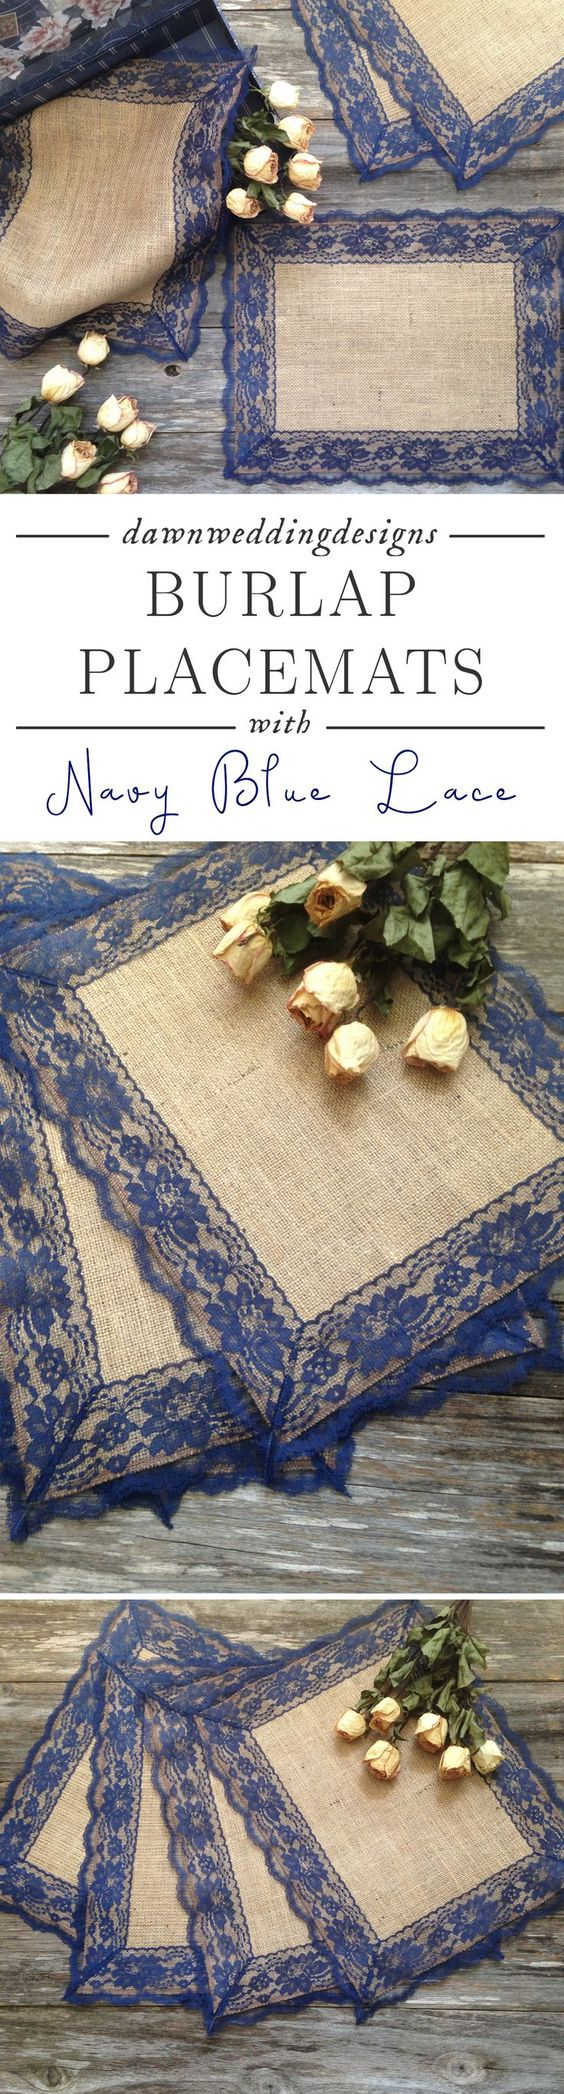 Wedding Quotes  : Rustic Navy Blue Wedding DAcor  Rustic Placemats  Burlap and NAVY / DARK BL